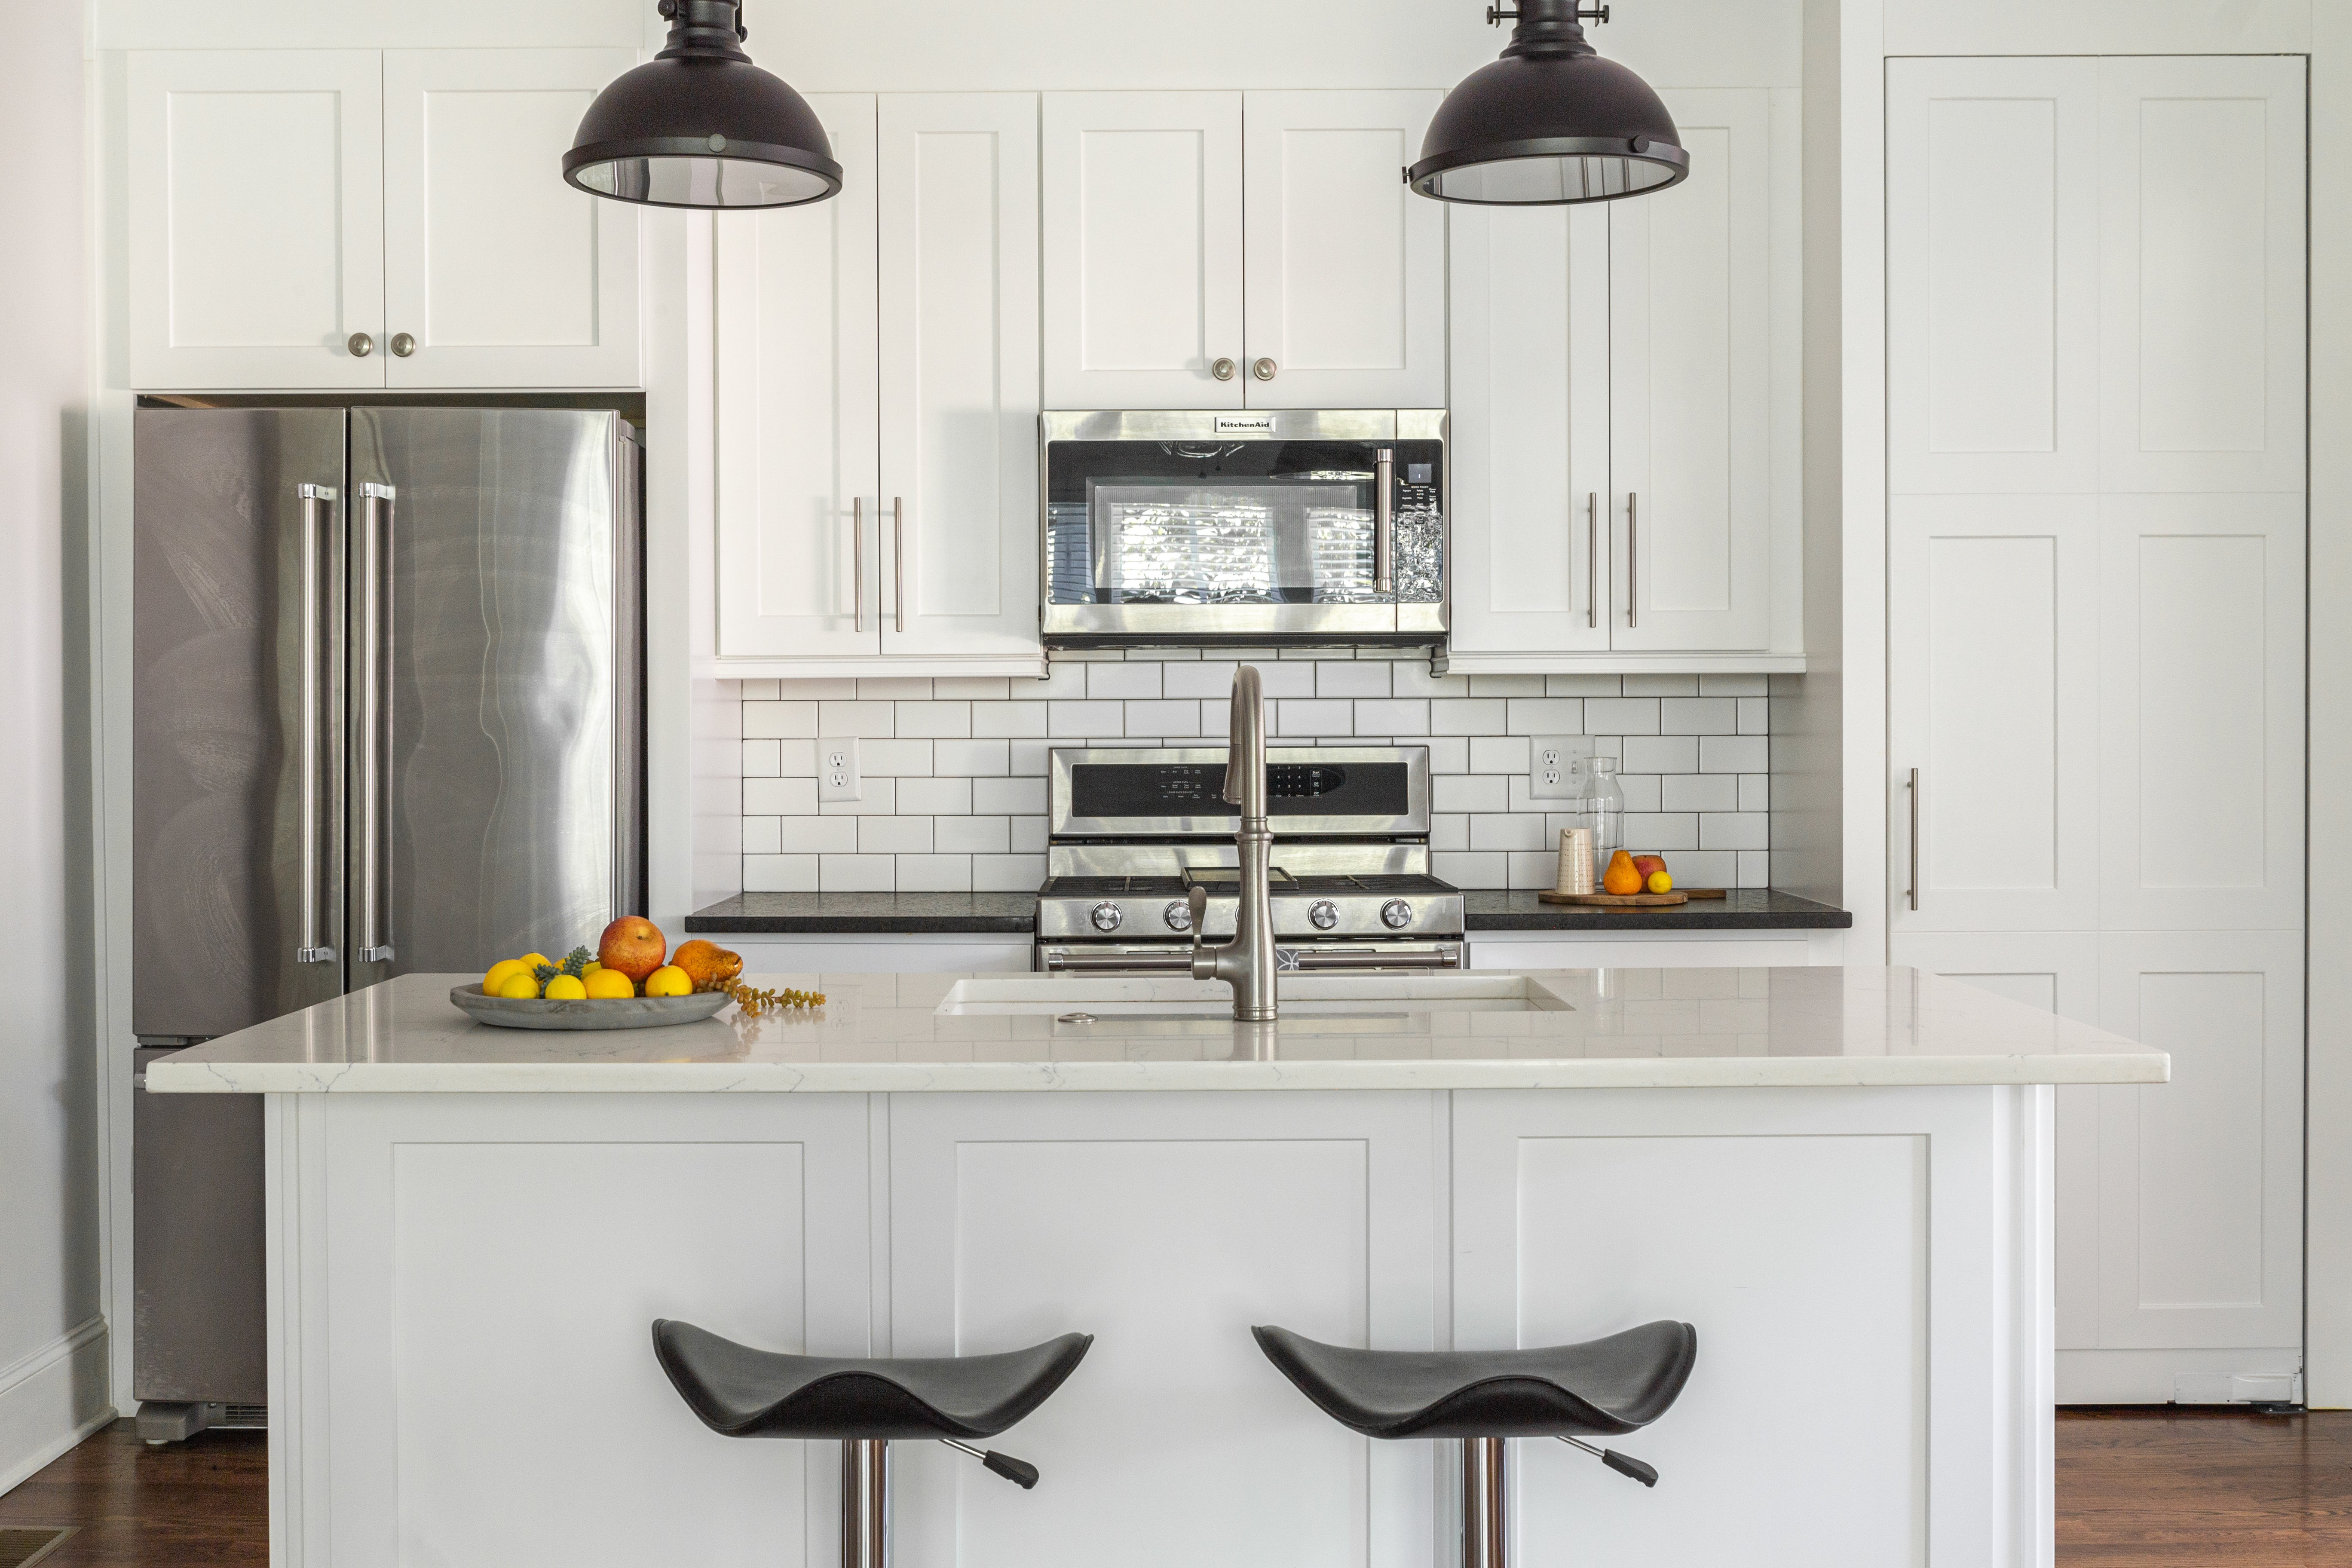 13 counter stools Sinclair Carriage House-7.jpg